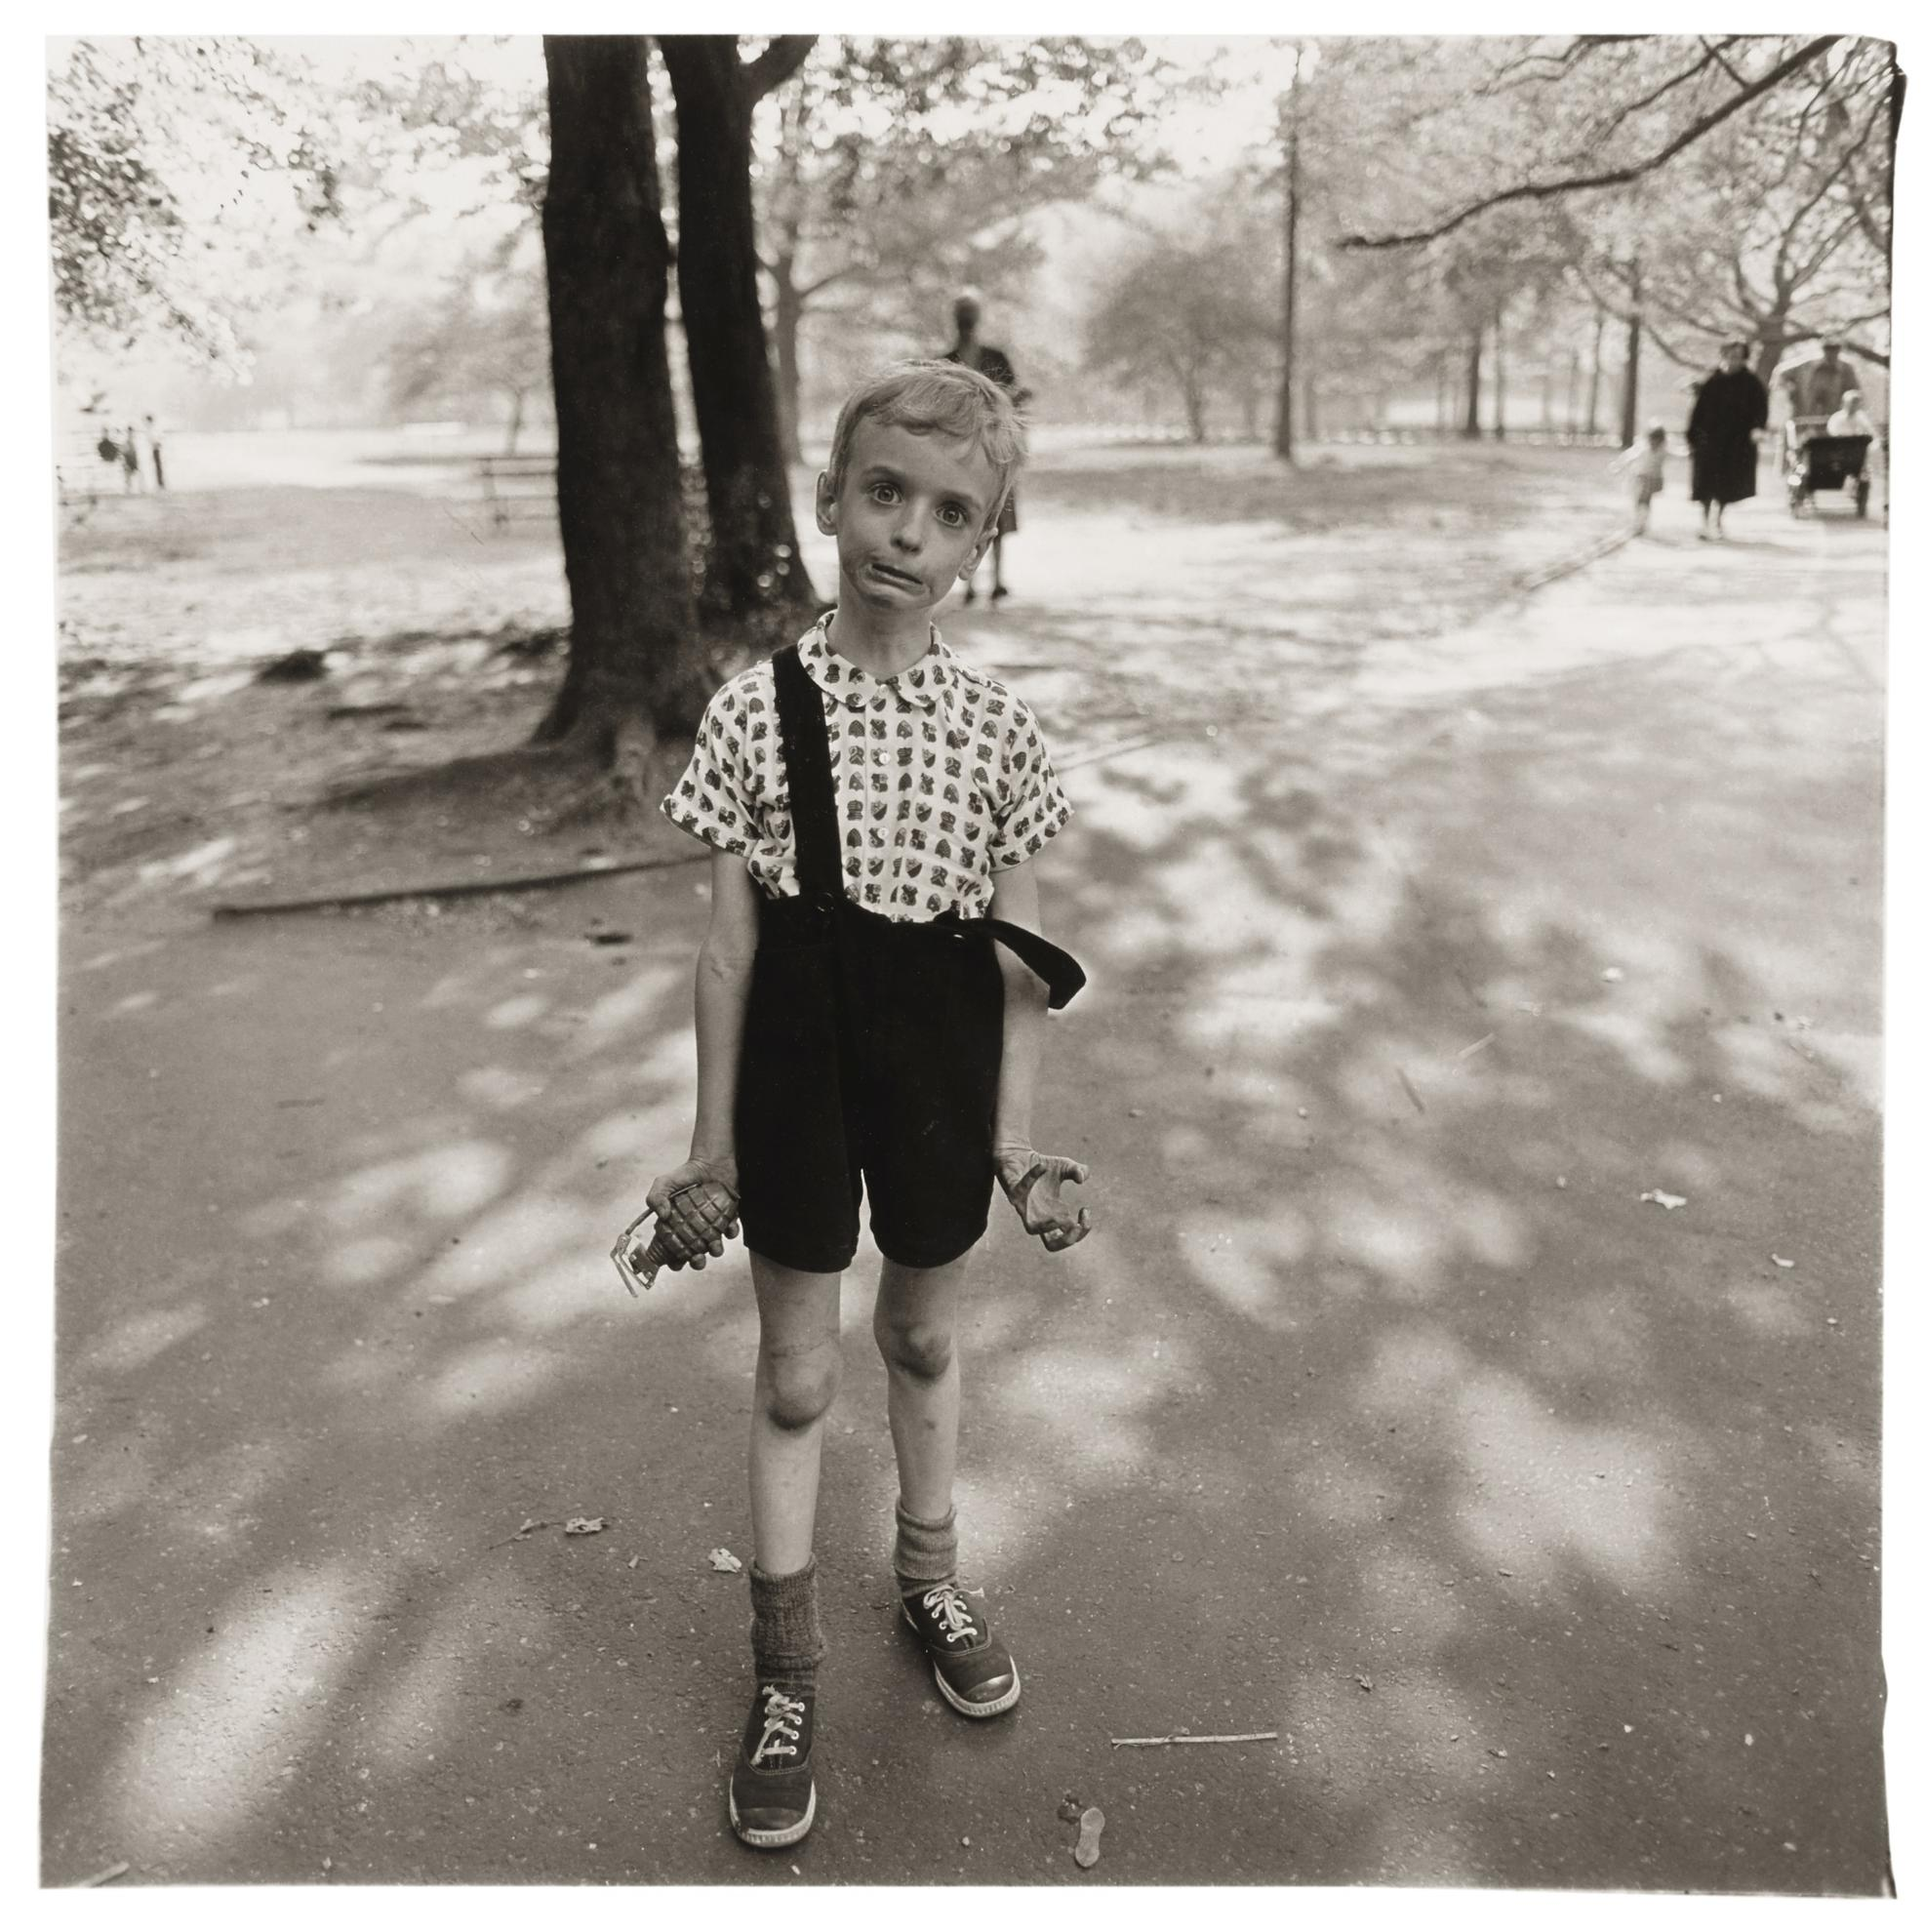 Diane Arbus-Child With A Toy Hand Grenade In Central Park, N. Y. C.-1962